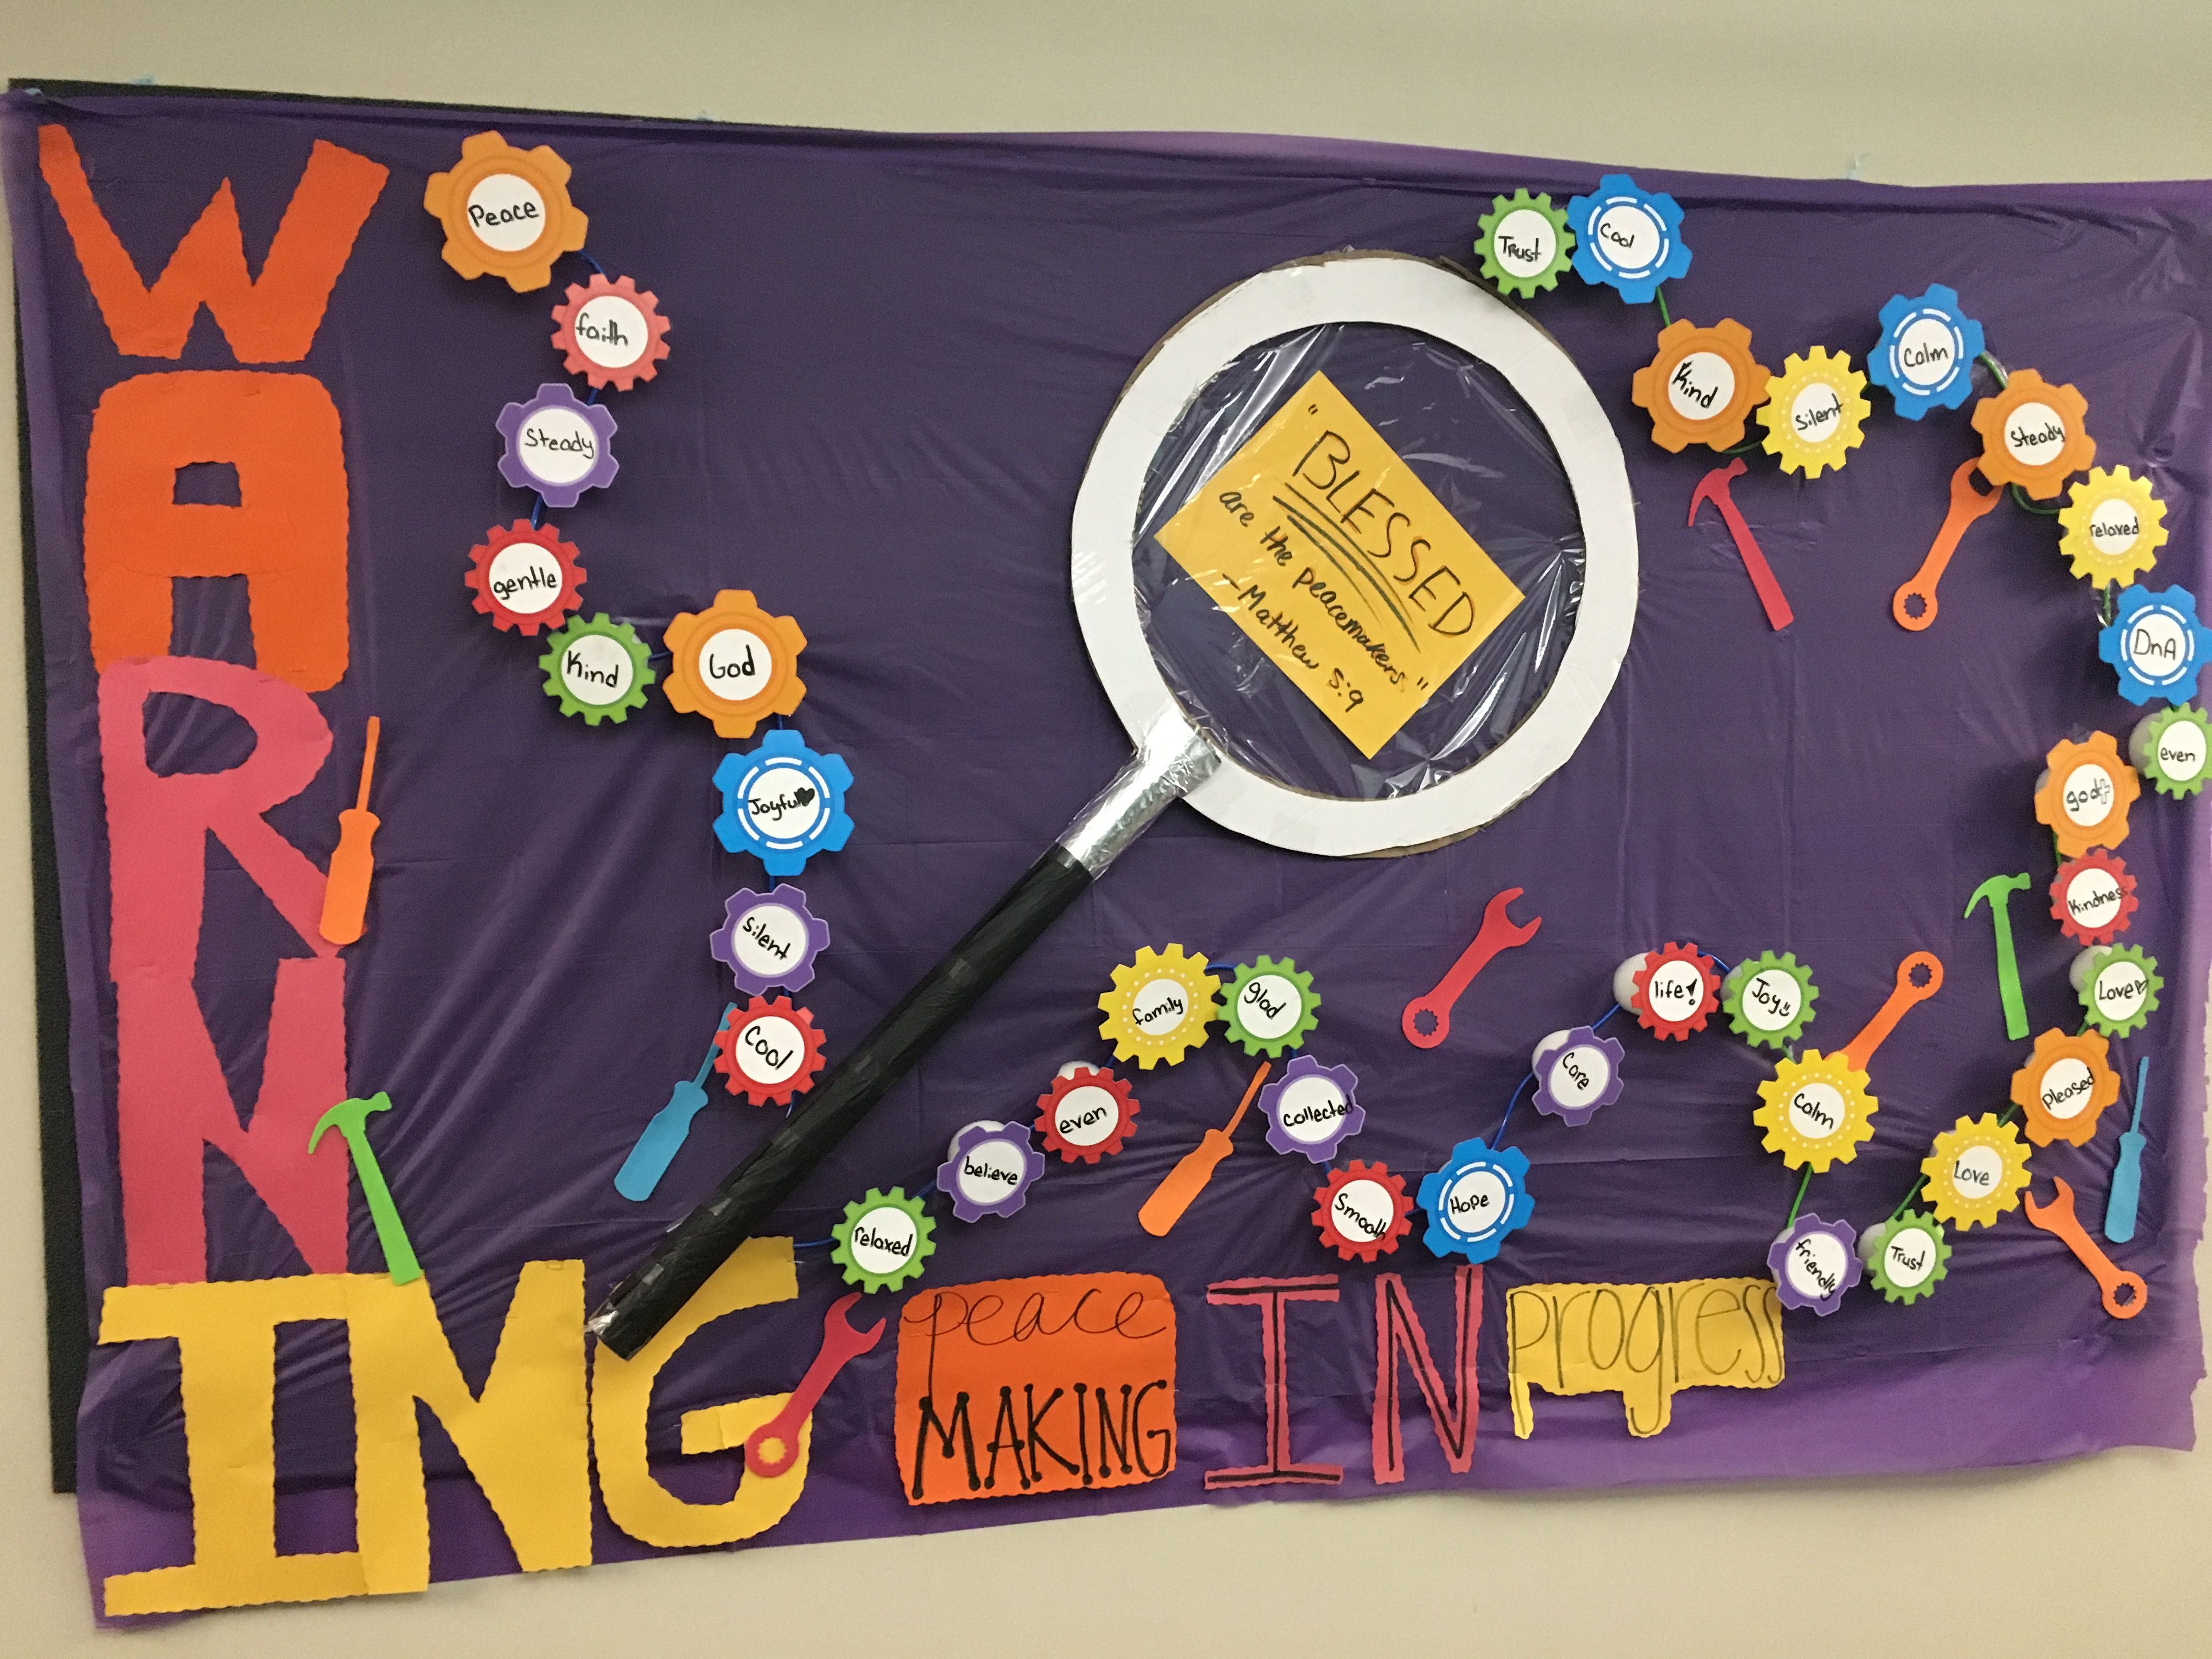 Peace Lab Vbs Bulletin Board Designed By Youth Gears And Tools